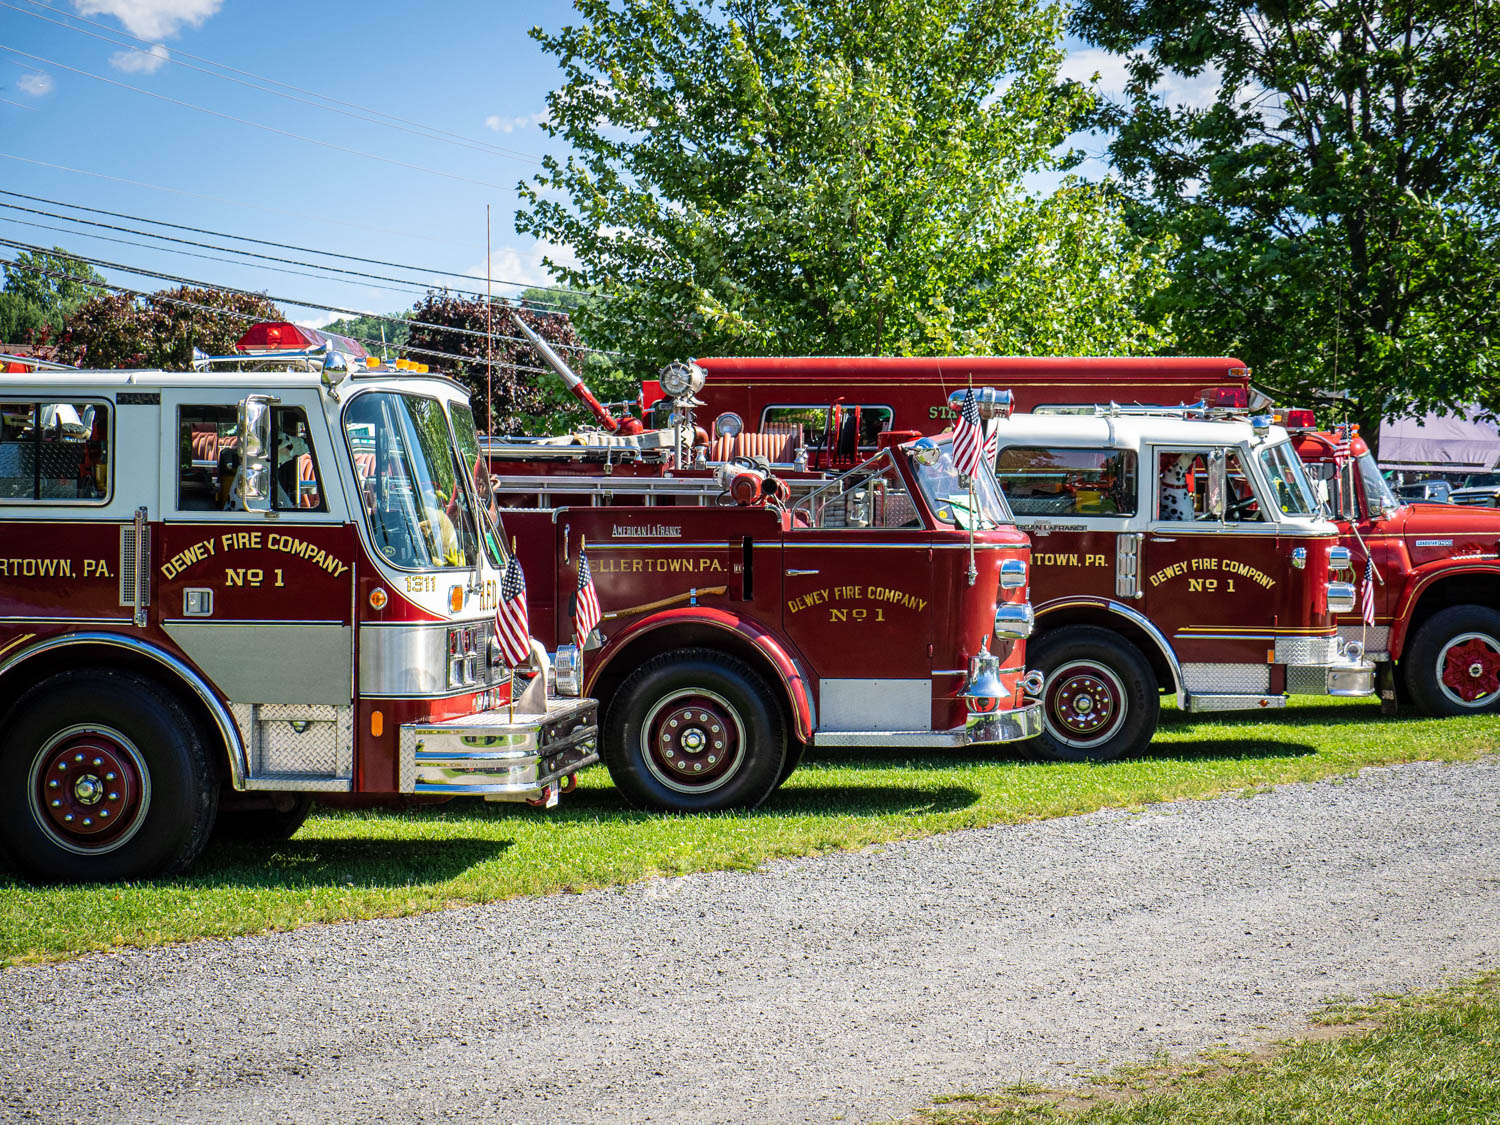 Hagerty member Ron Smith of Allentown, PA, brought out his fleet of vintage fire trucks, including American LaFrance and Hahn machinery. Each is a truck he served on during a long stint as a volunteer firefighter.